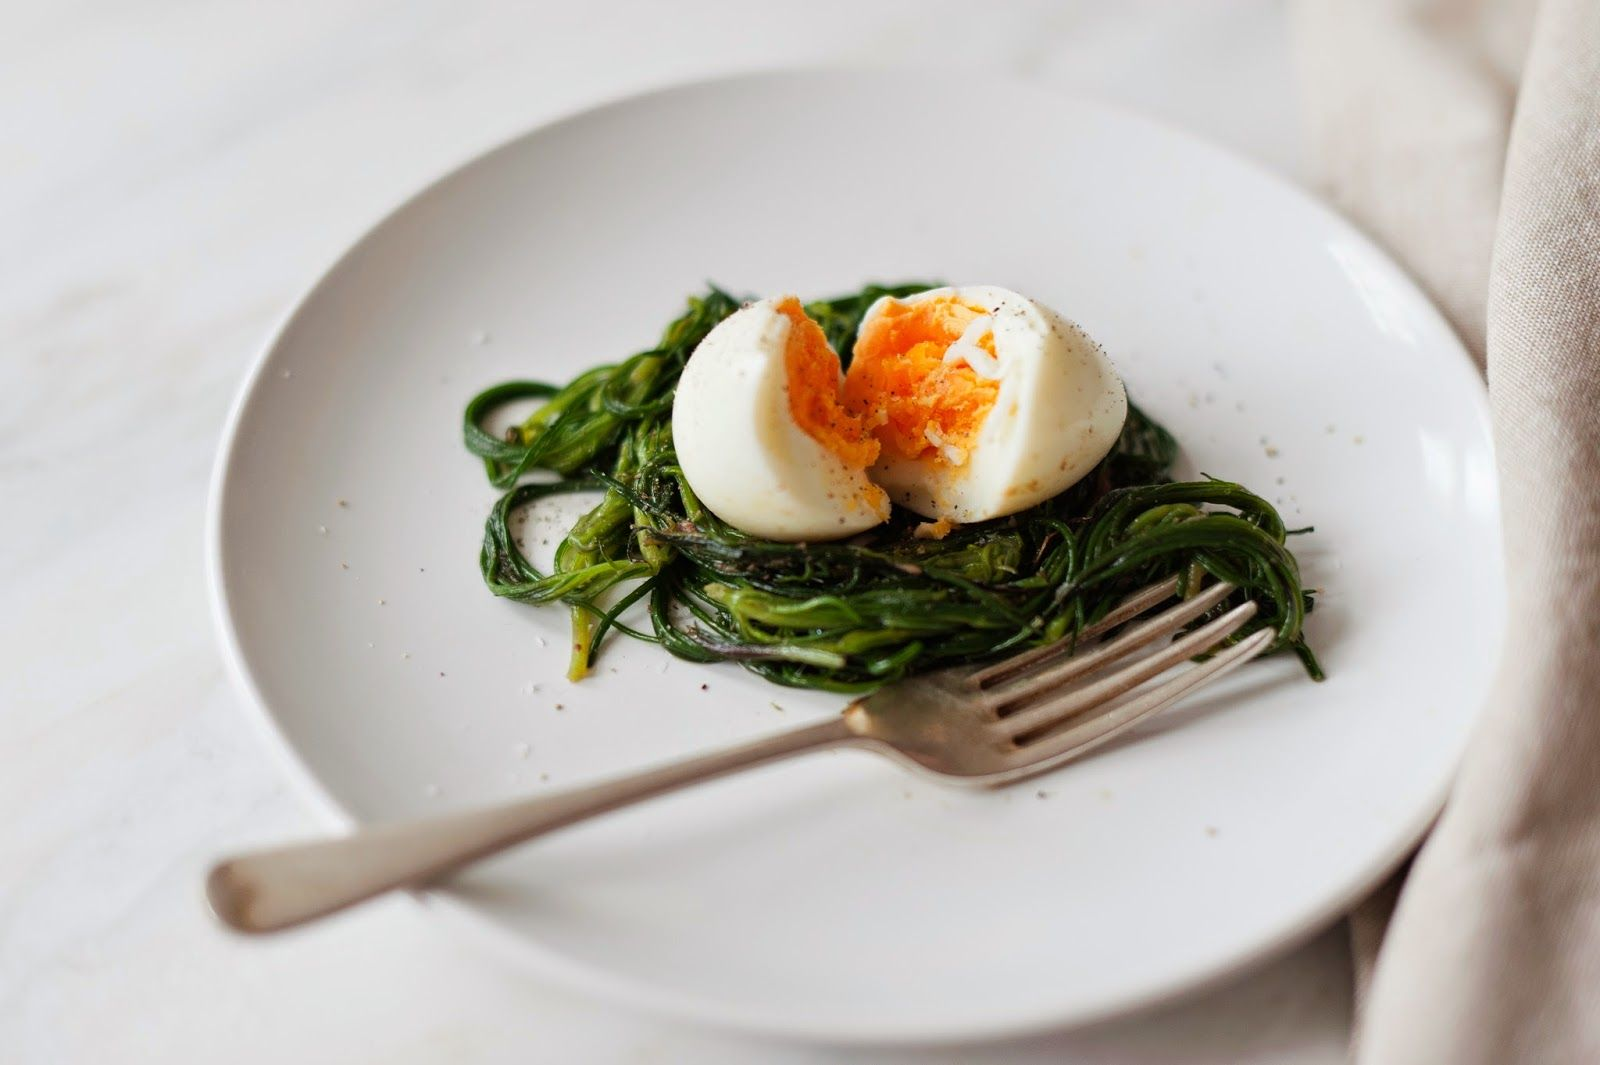 Monk's Beard with Egg